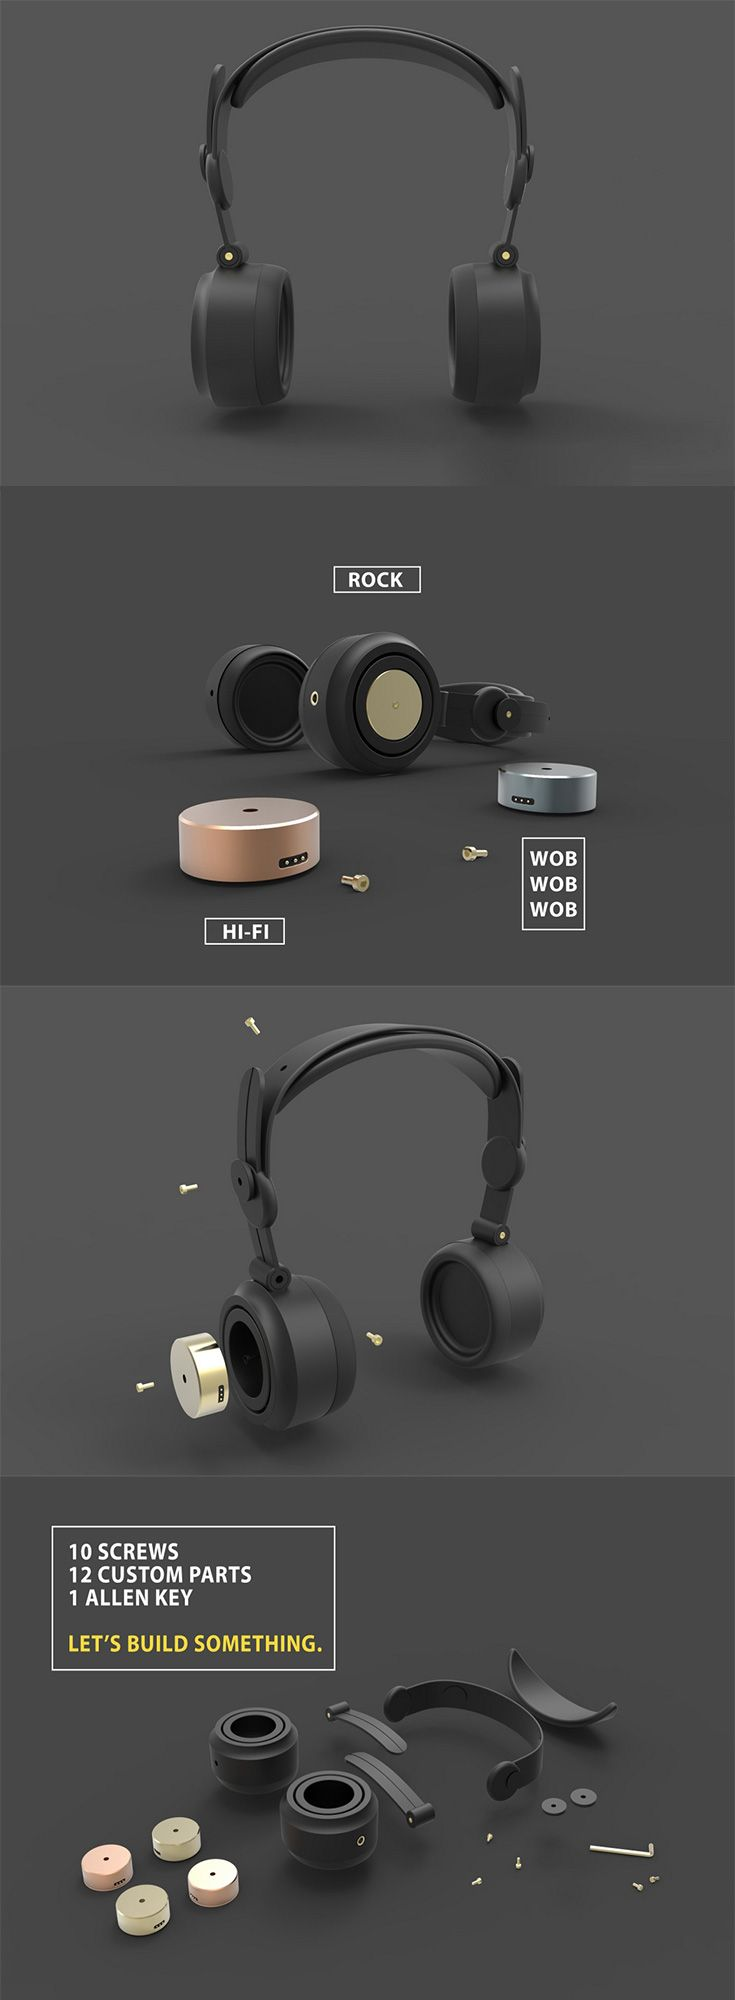 136 best earbud/headphone images on Pinterest | Product design, Ear ...